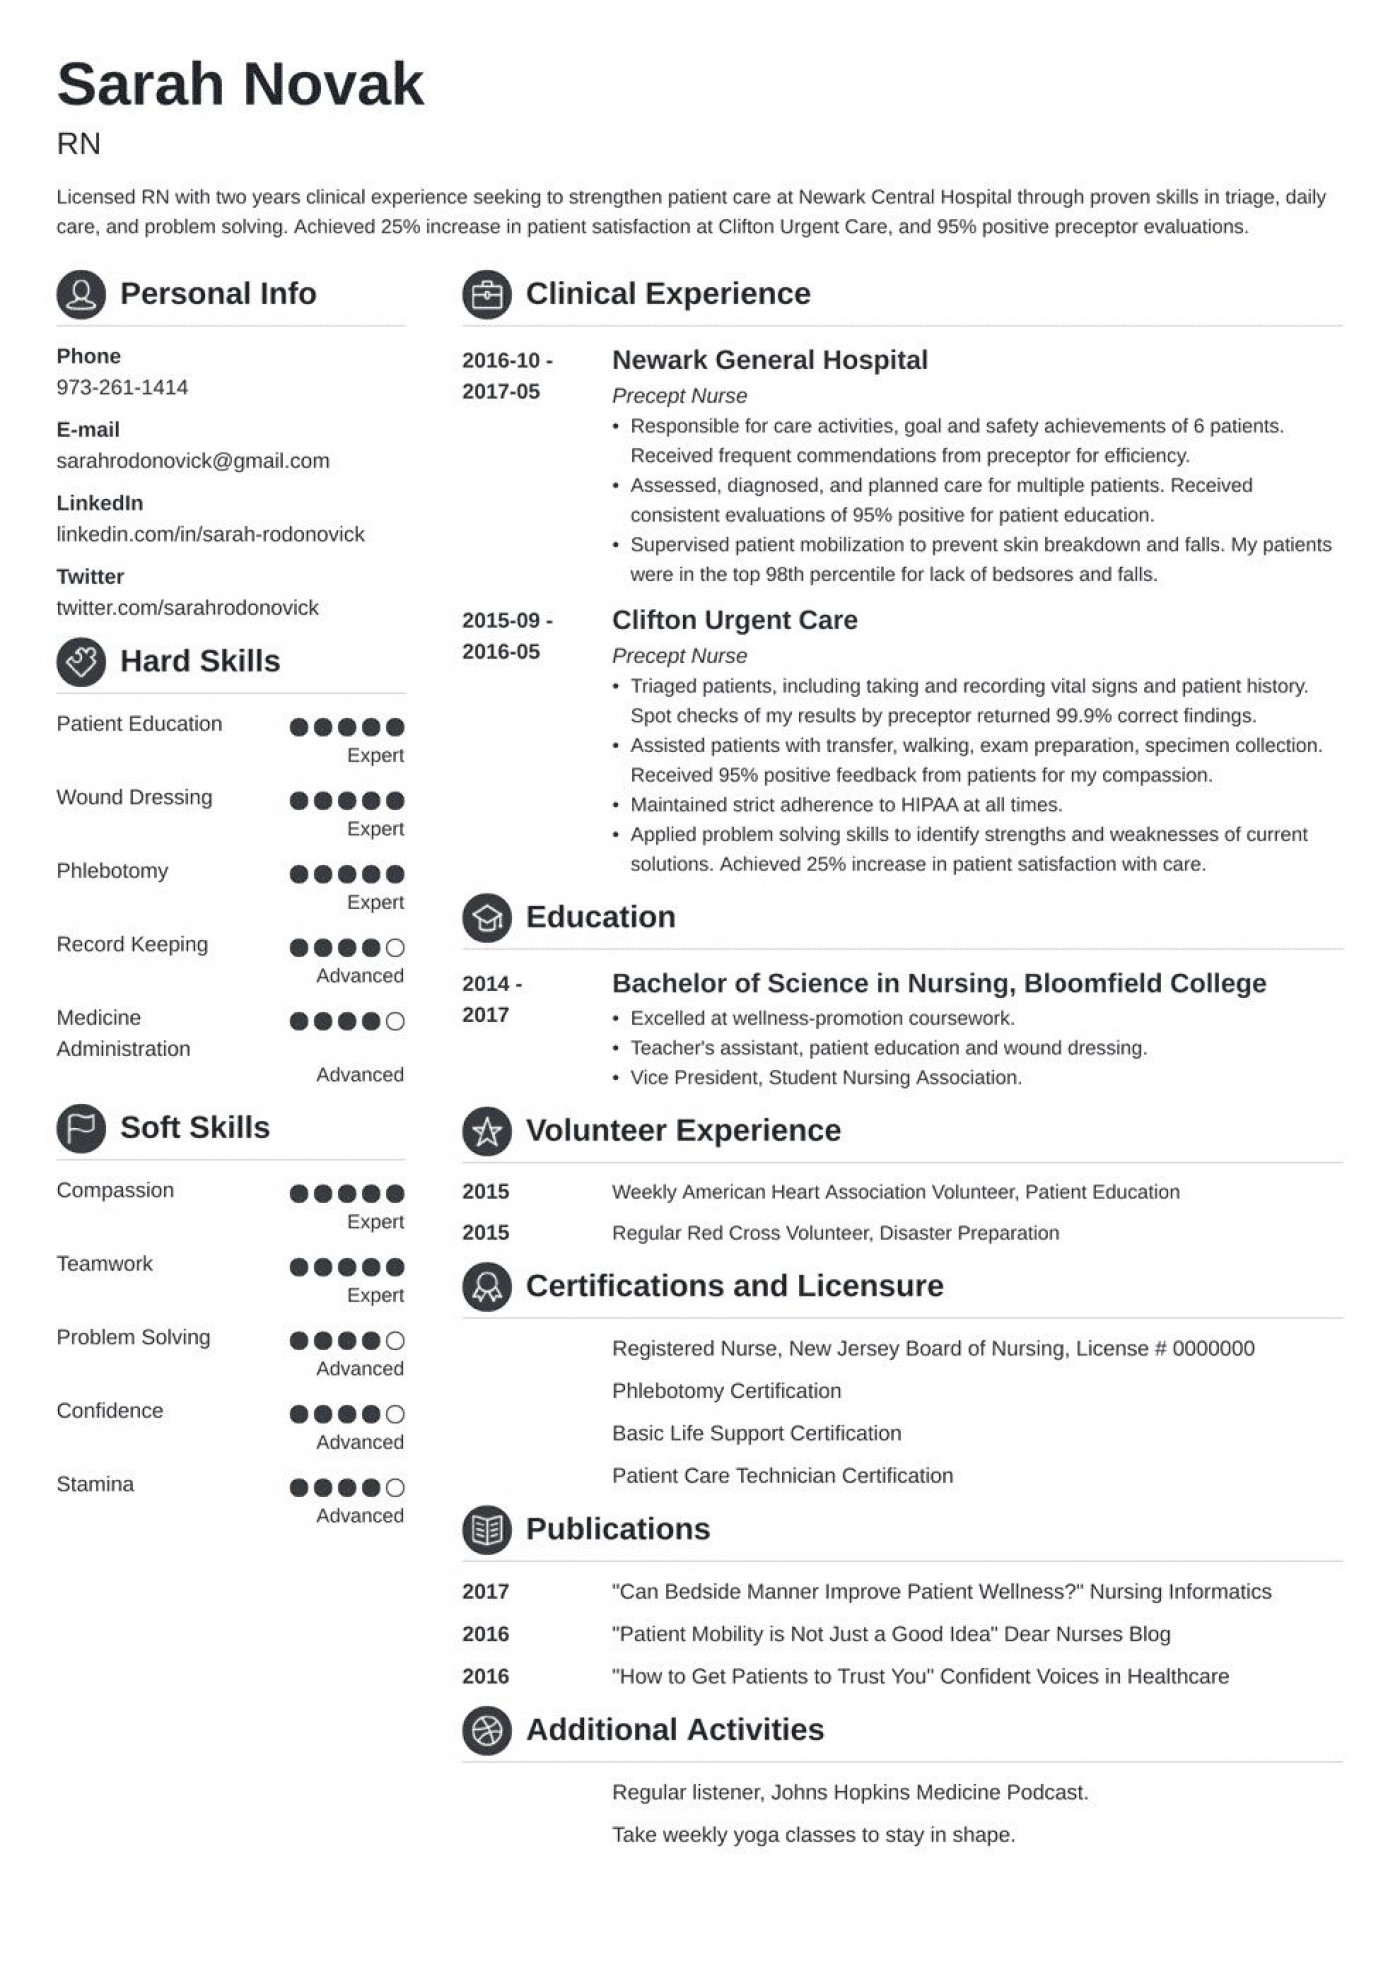 007 Marvelou New Grad Nursing Resume Template Photo  Graduate Nurse Practitioner1400